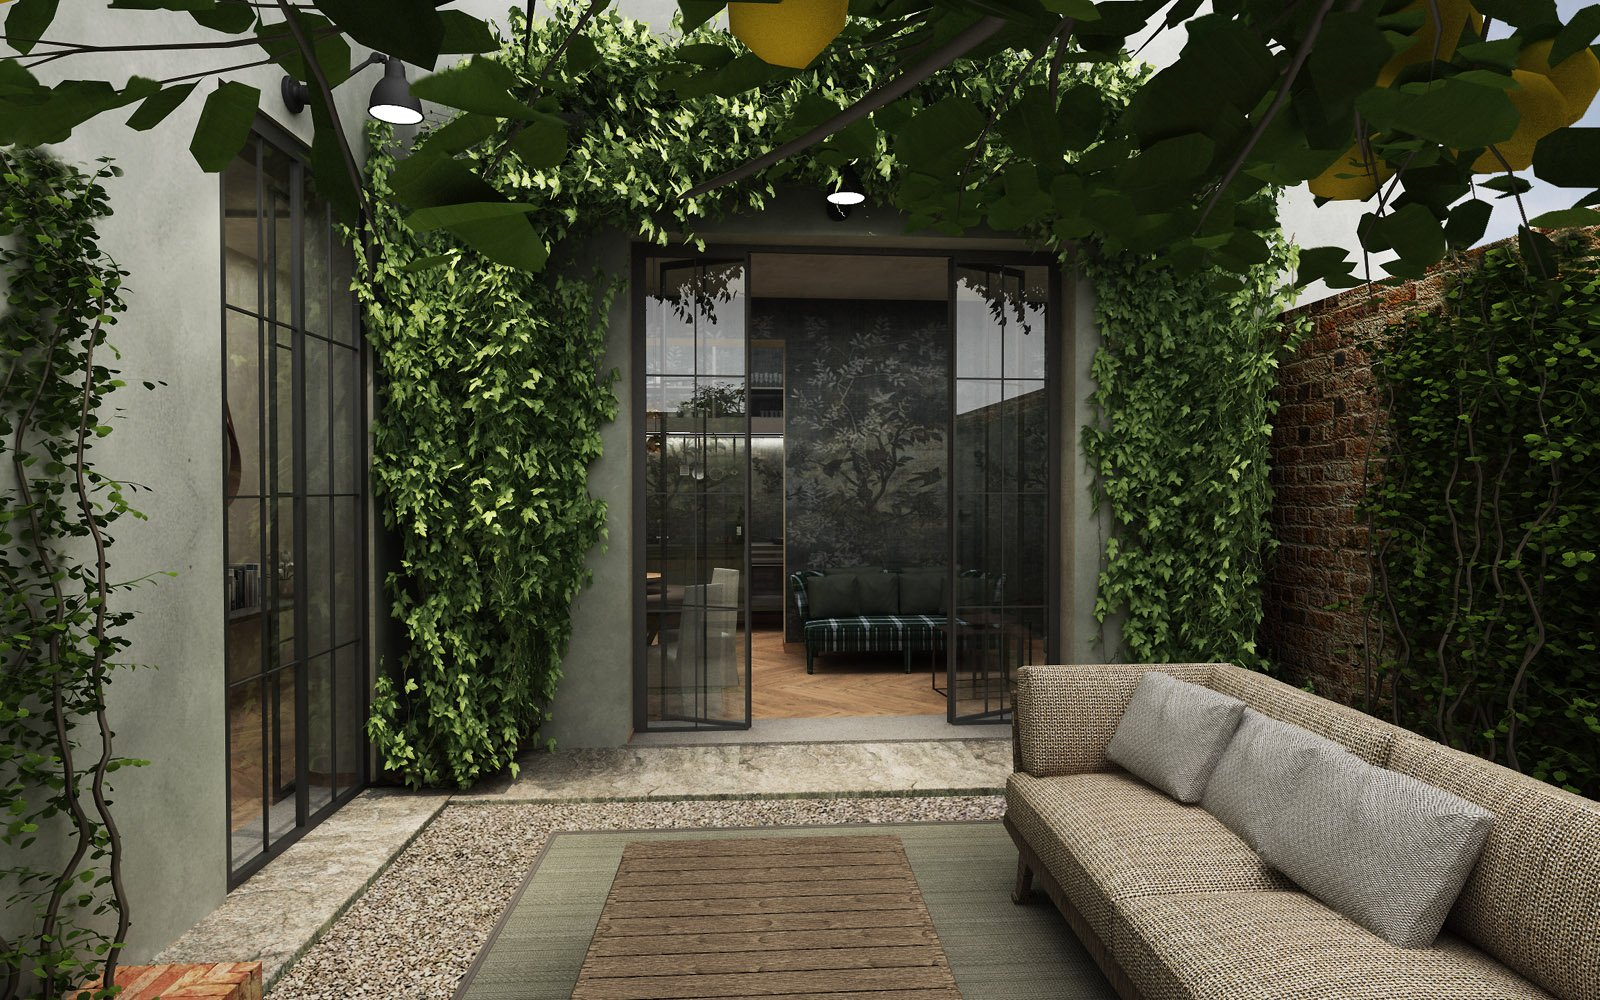 Apartment of the week: Secret Garden